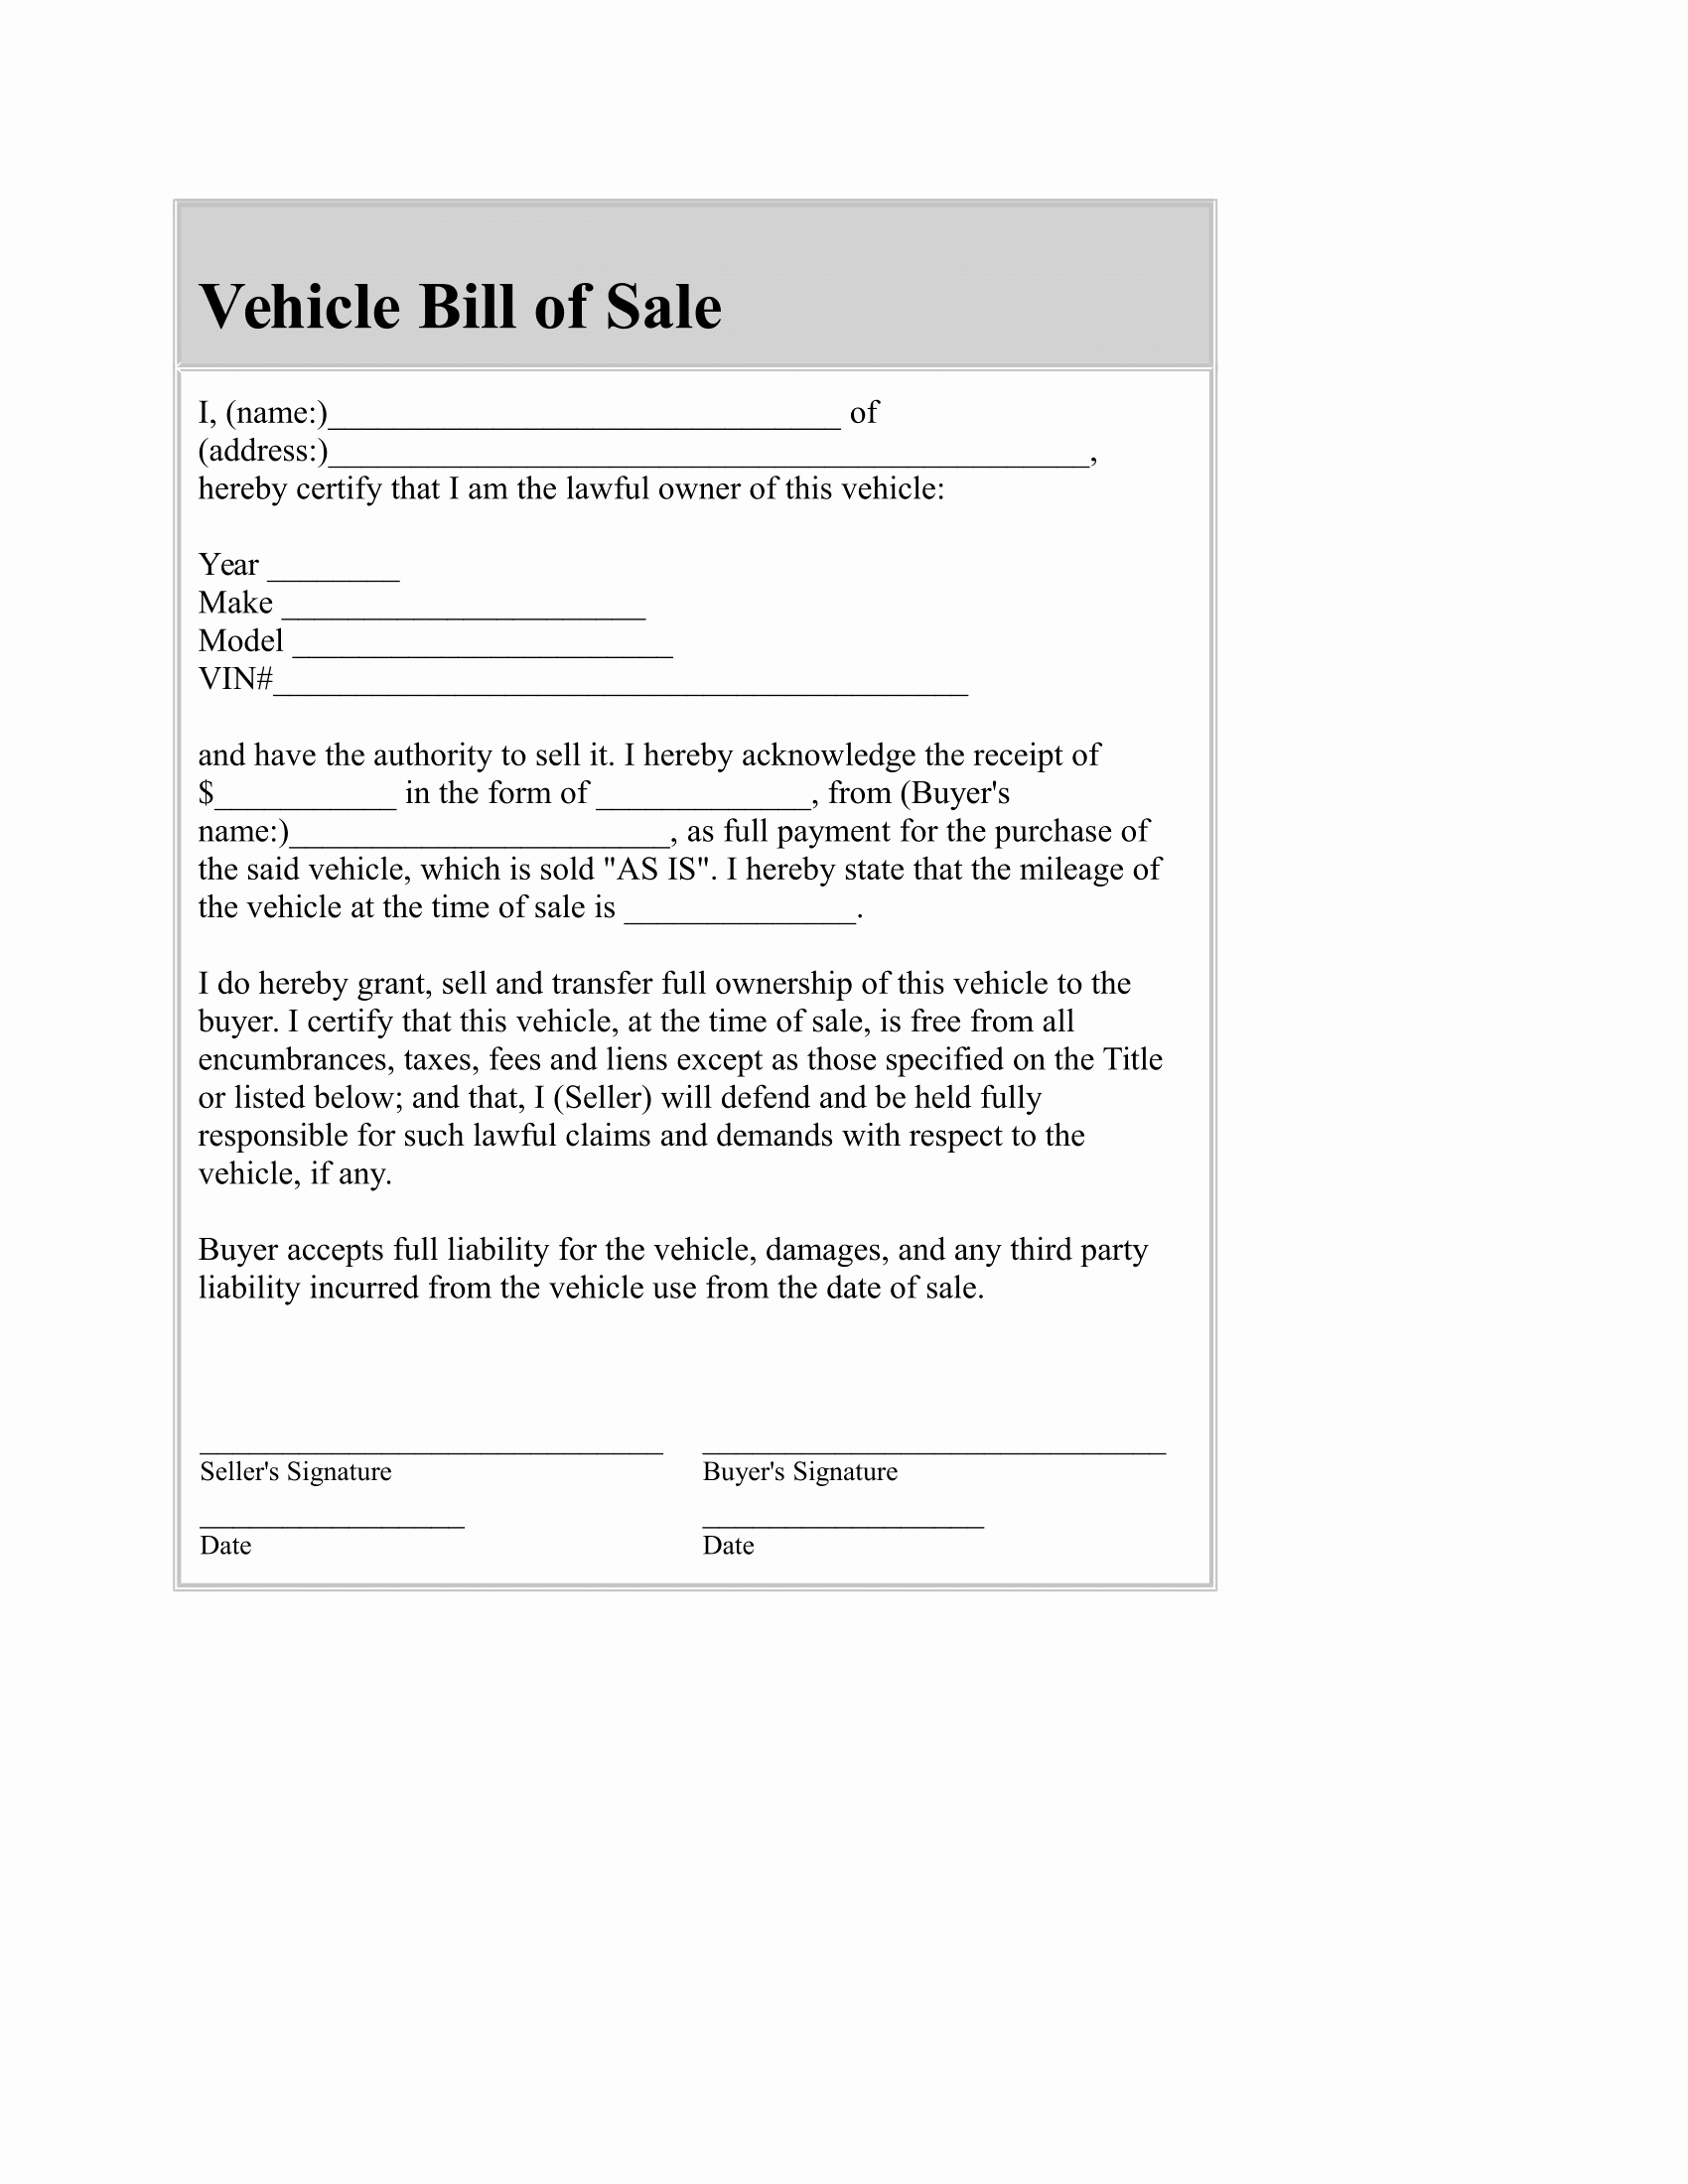 Bill Of Sale Example Letter Fresh Bill Sale Word Template Mughals